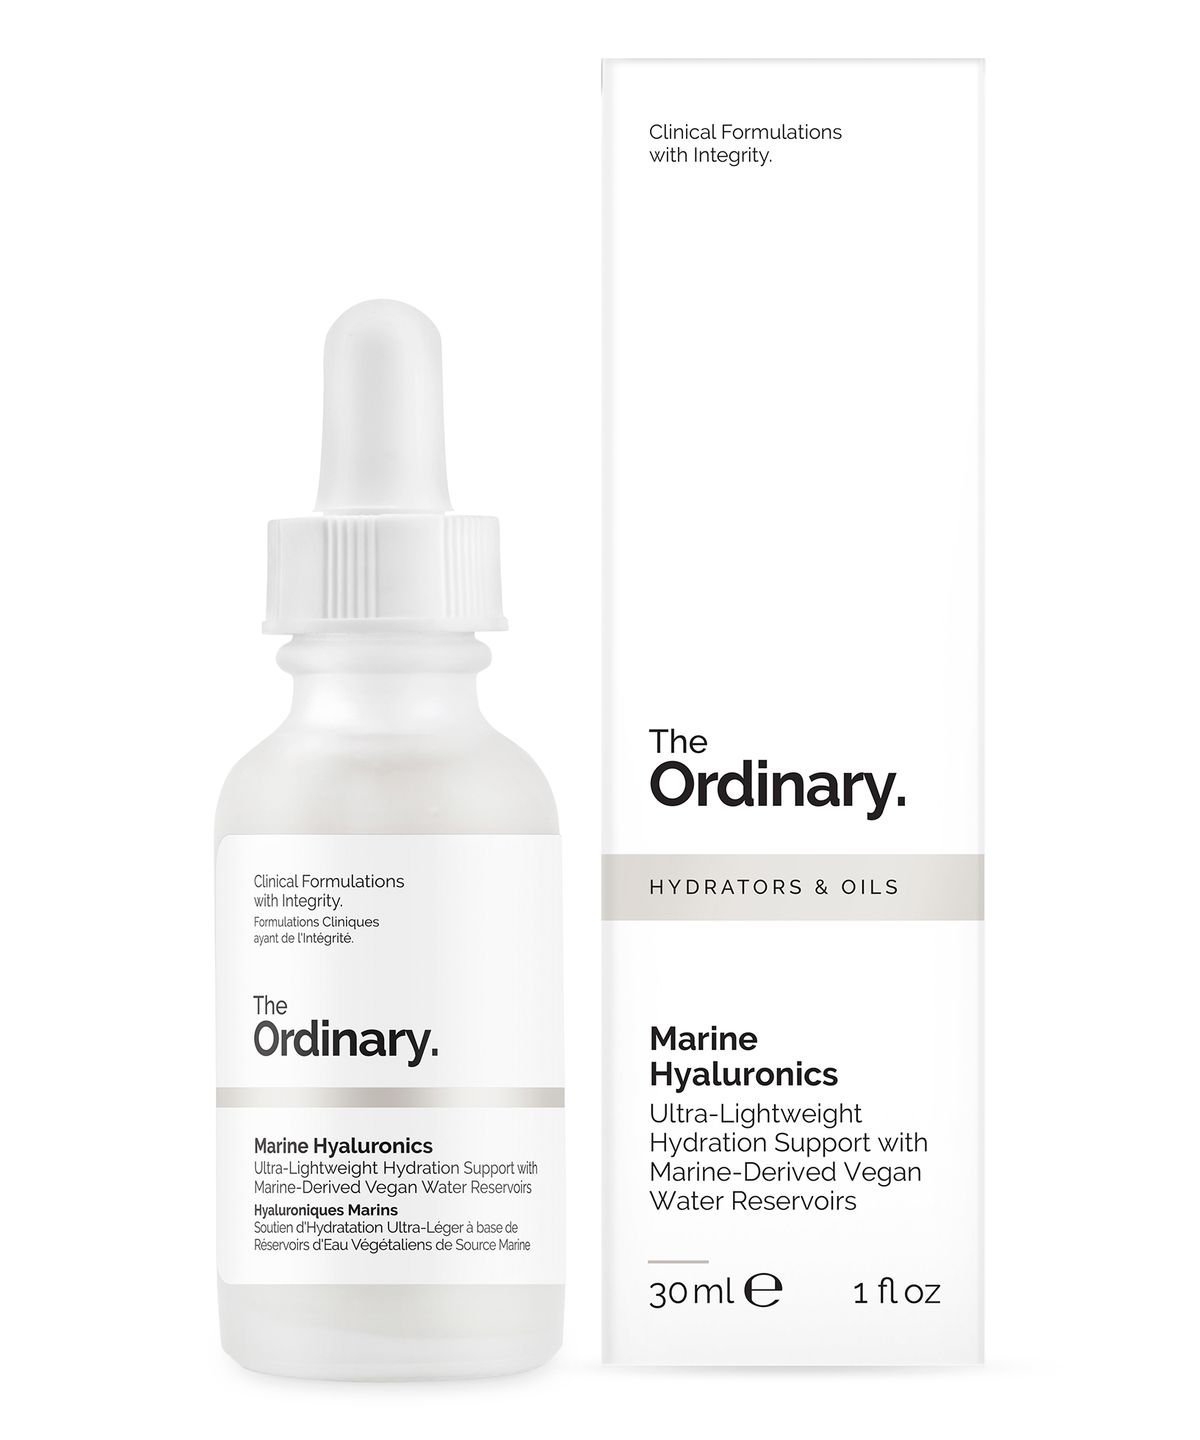 The Ordinary Marine Hyaluronics (30ml/1oz) Ultra-Lightweight Hydration Support The Ordinary by Deciem